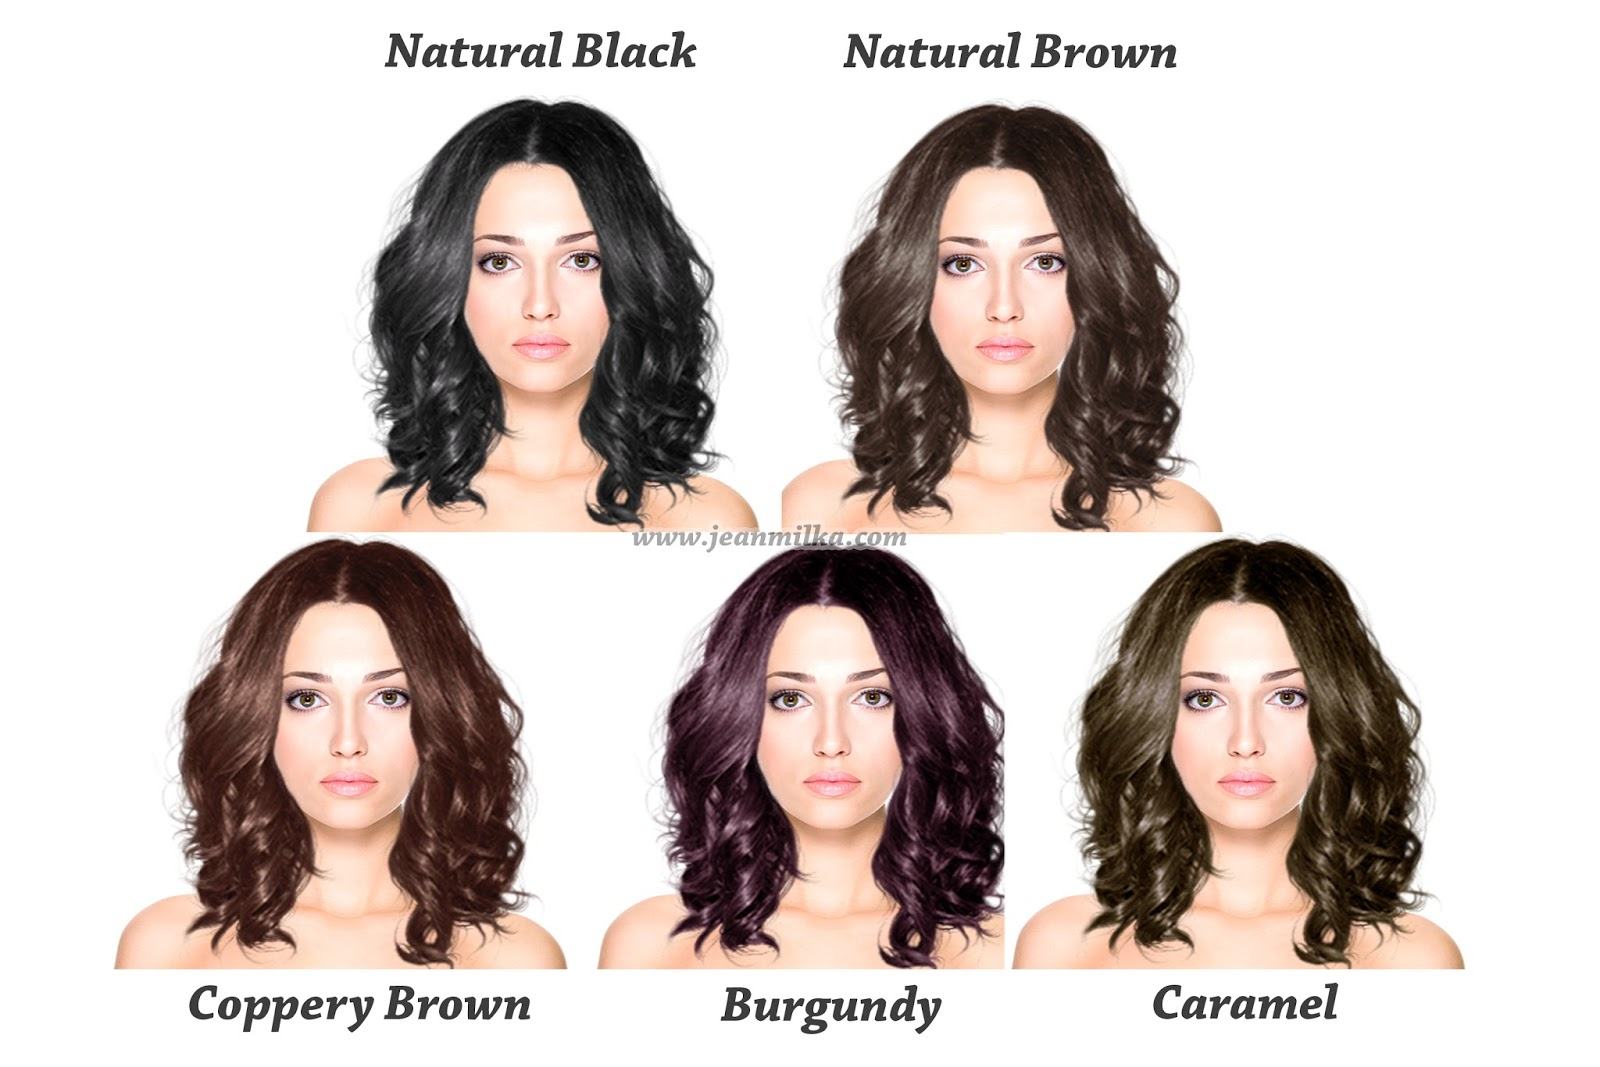 nyu, nyu hair, hair color, hair colour, warna rambut, cat rambut nyu, review nyu, hair, hair style